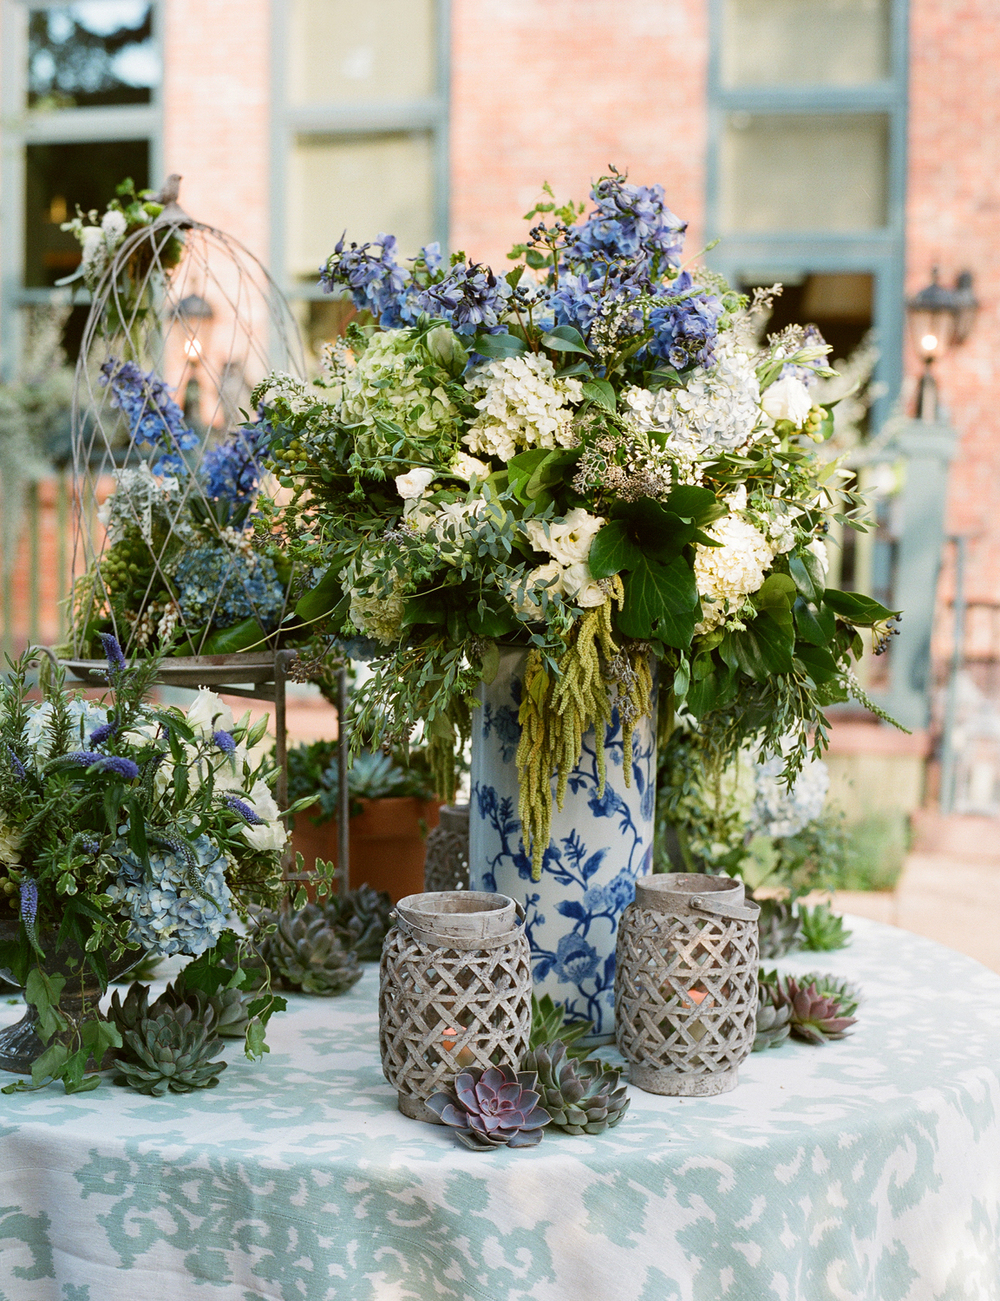 Green, white, blue flower arrangements on table